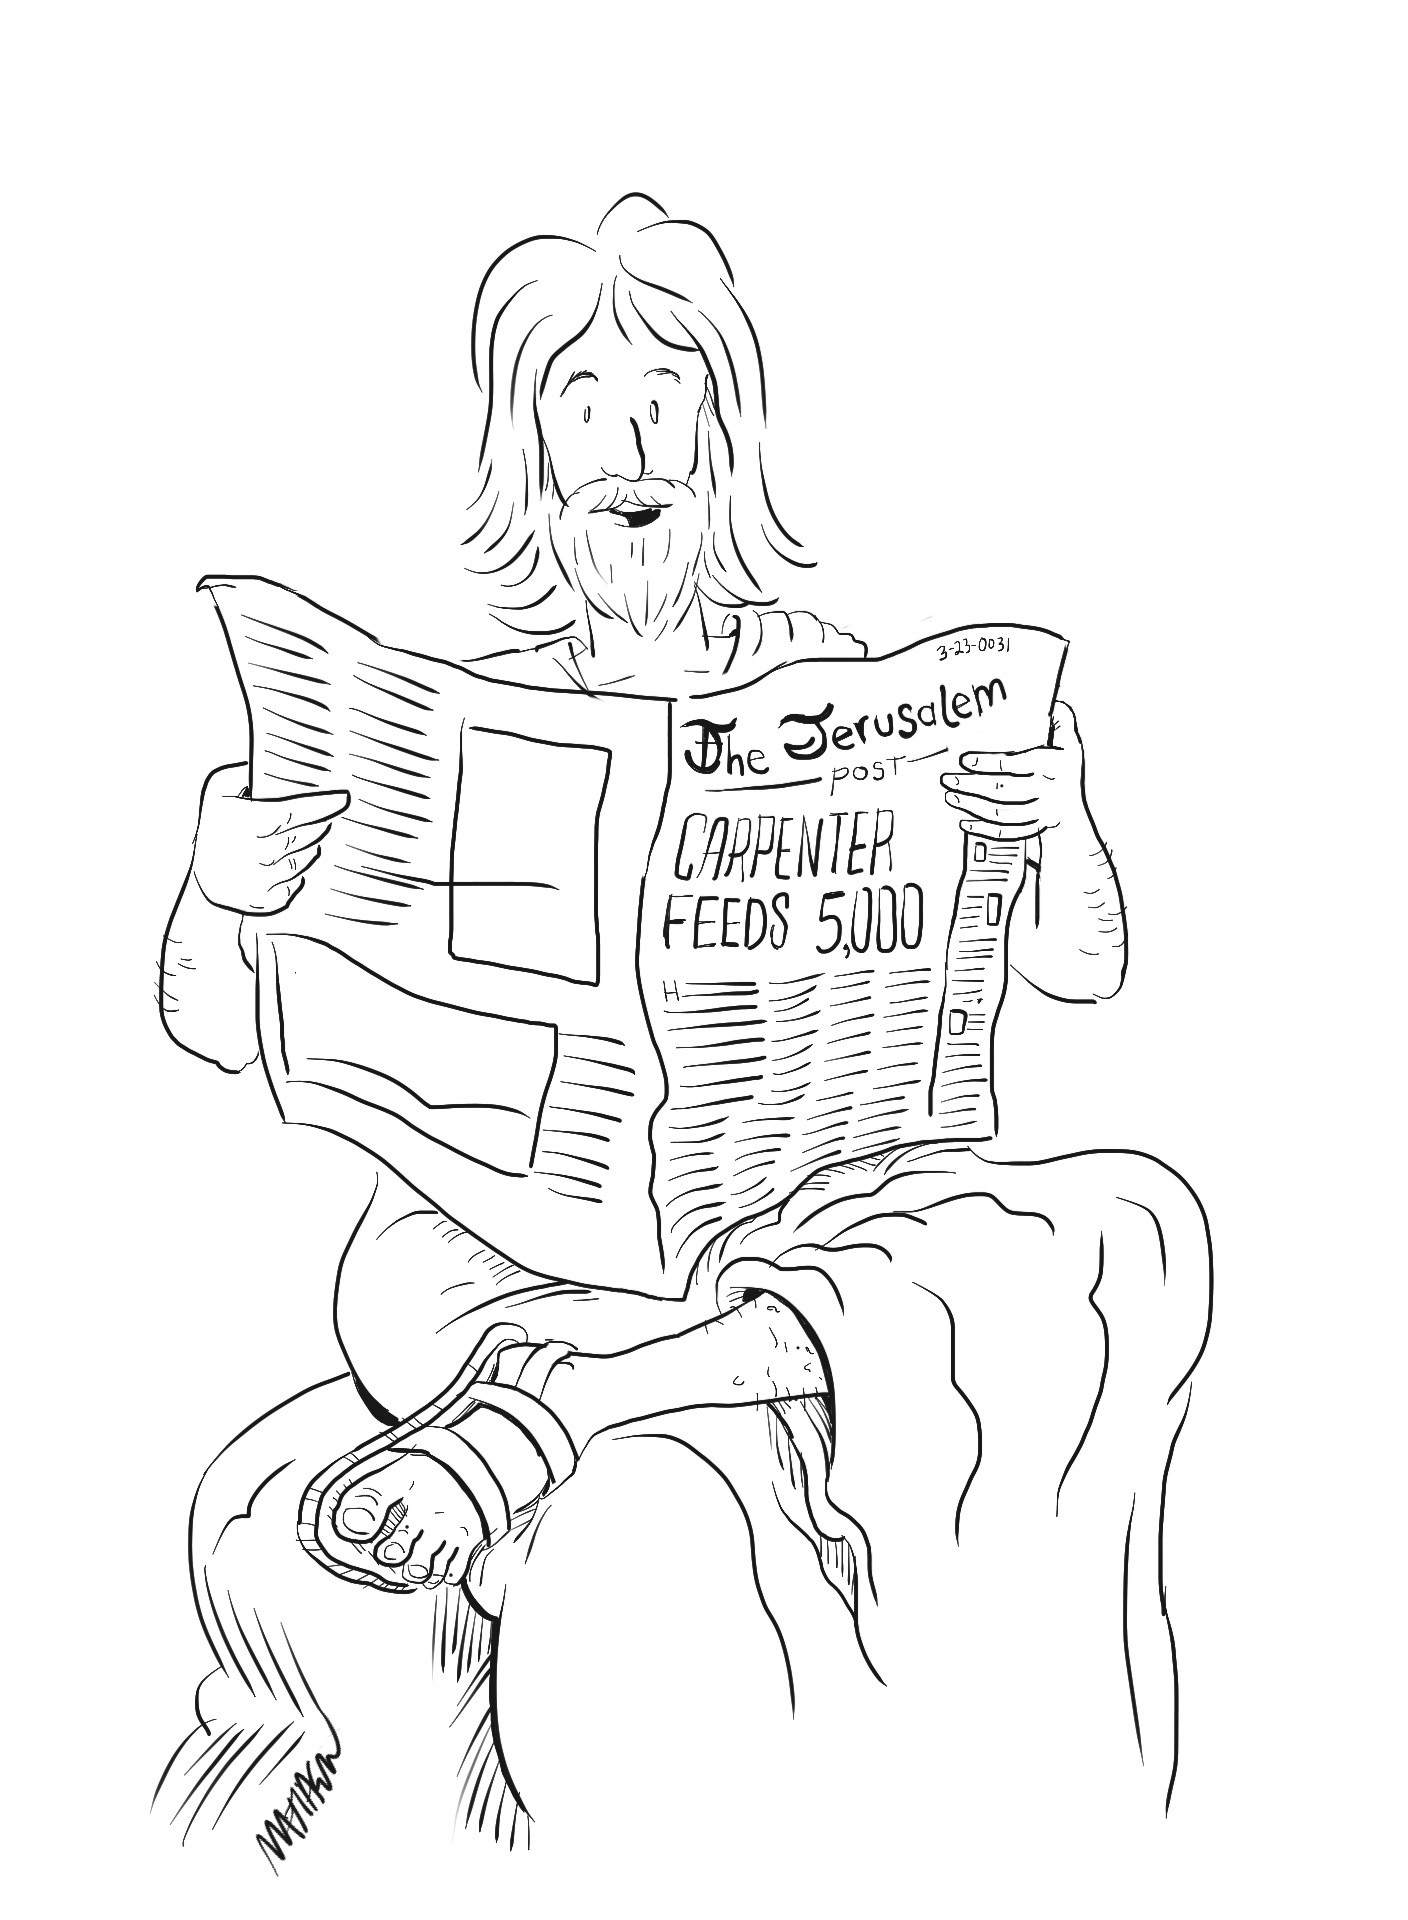 Jesus reading the newspaper in Jerusalem post, article about Jesus feeding 5000 people